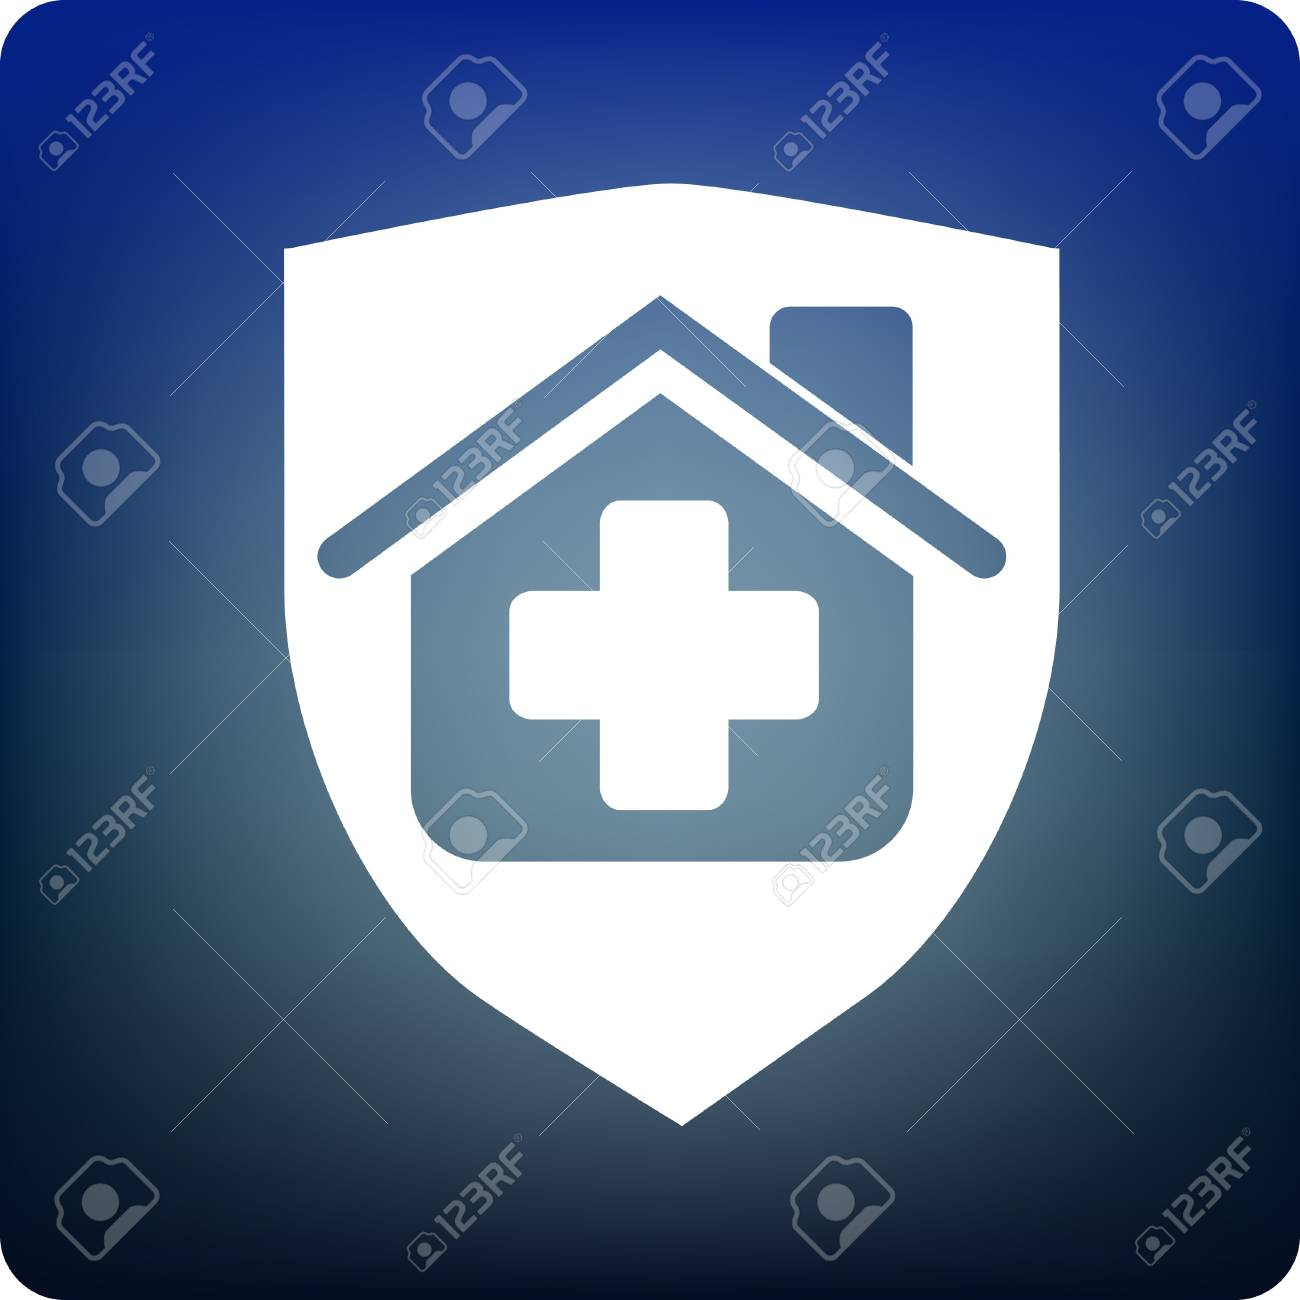 Home protection Stock Vector - 9716848